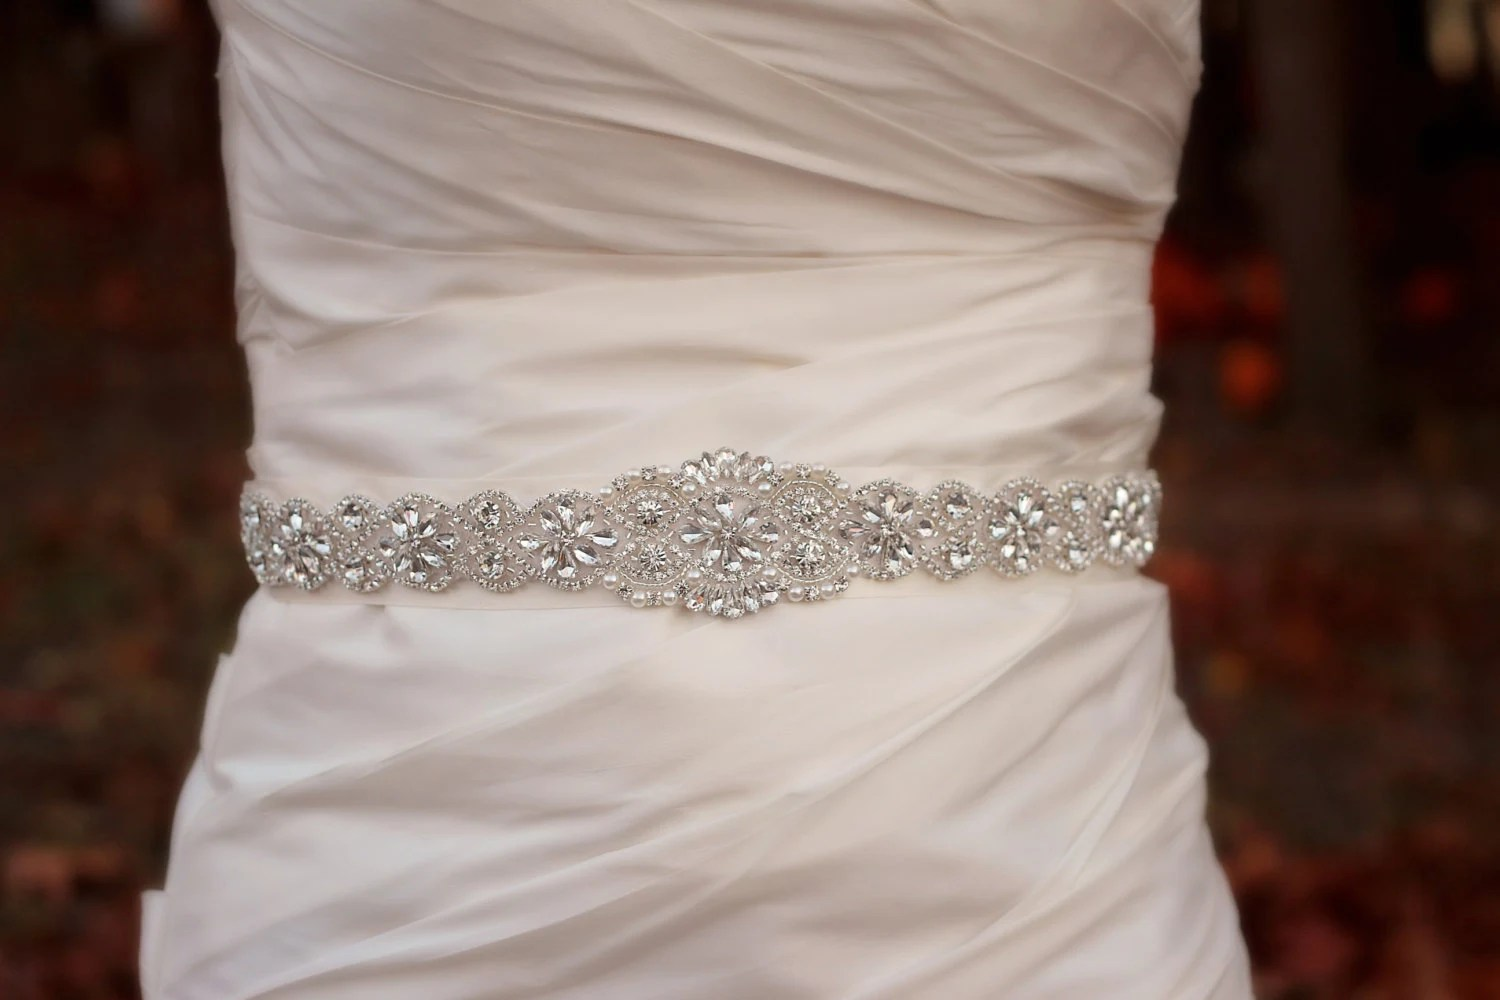 Beaded Wedding Sash Wedding Belt Rhinestone Bridal Belt